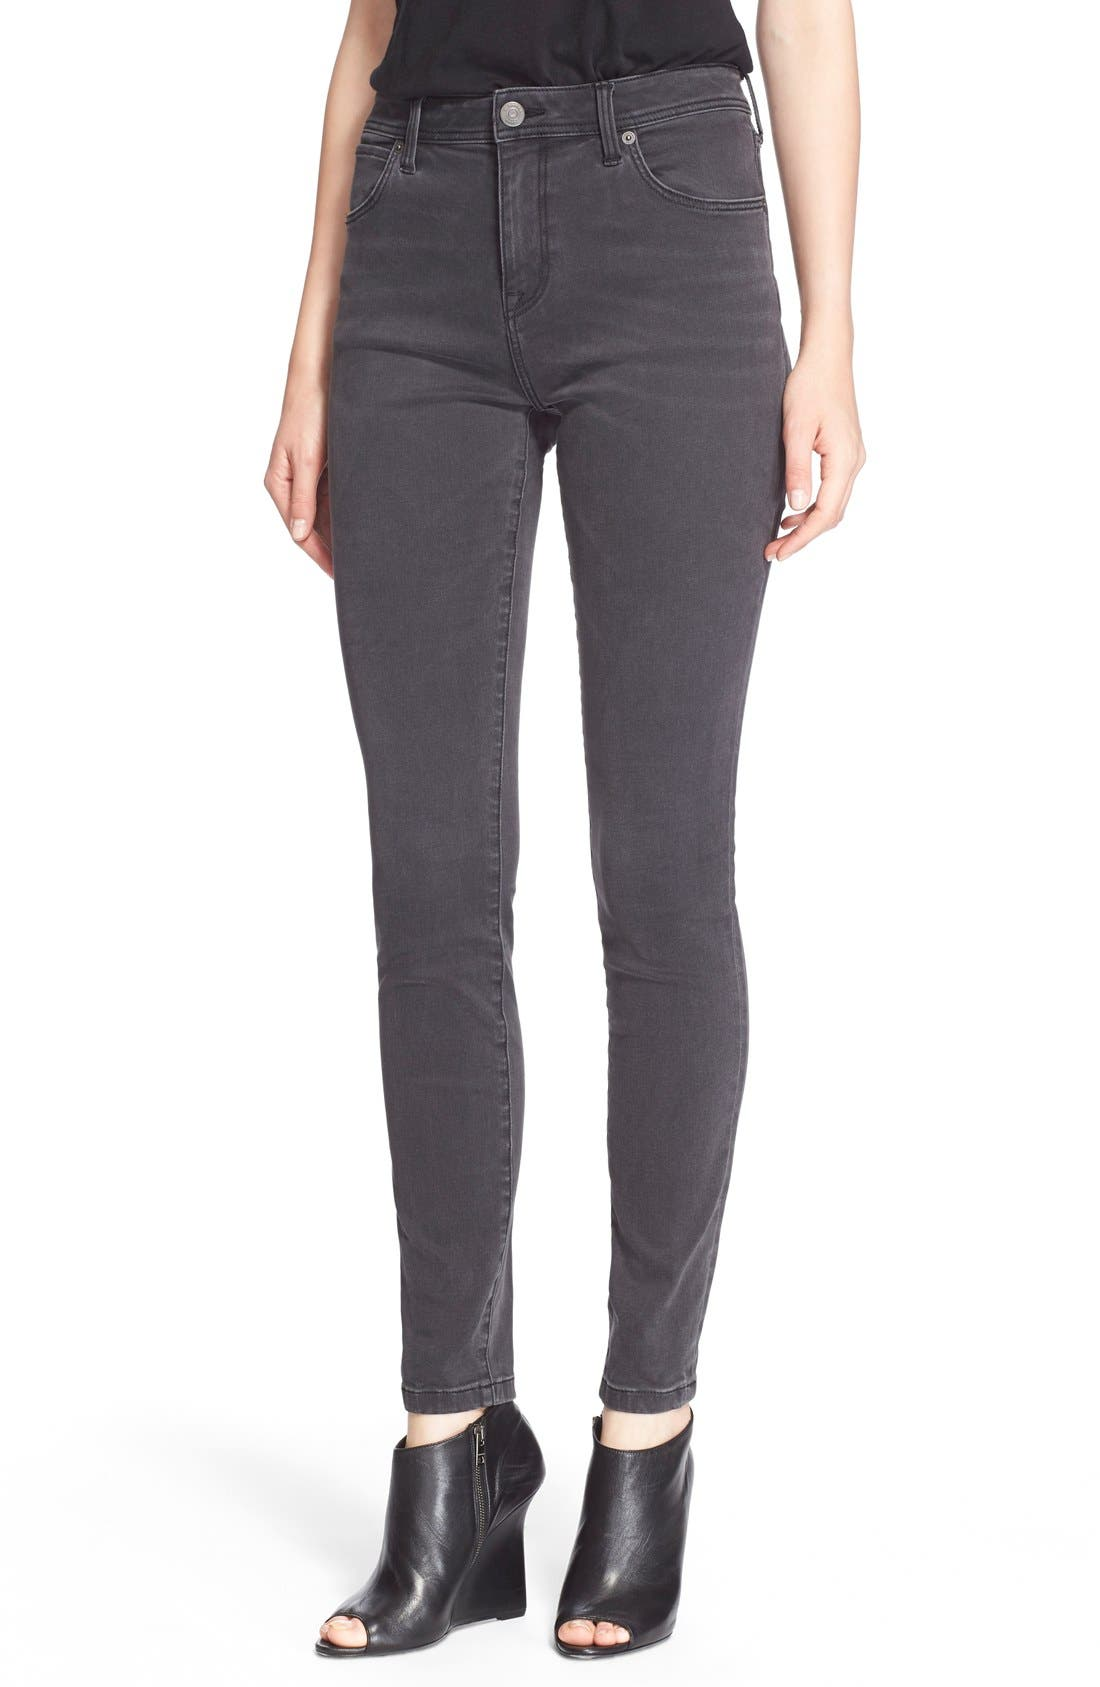 Alternate Image 1 Selected - Burberry Brit Skinny Jeans (Mid Grey)